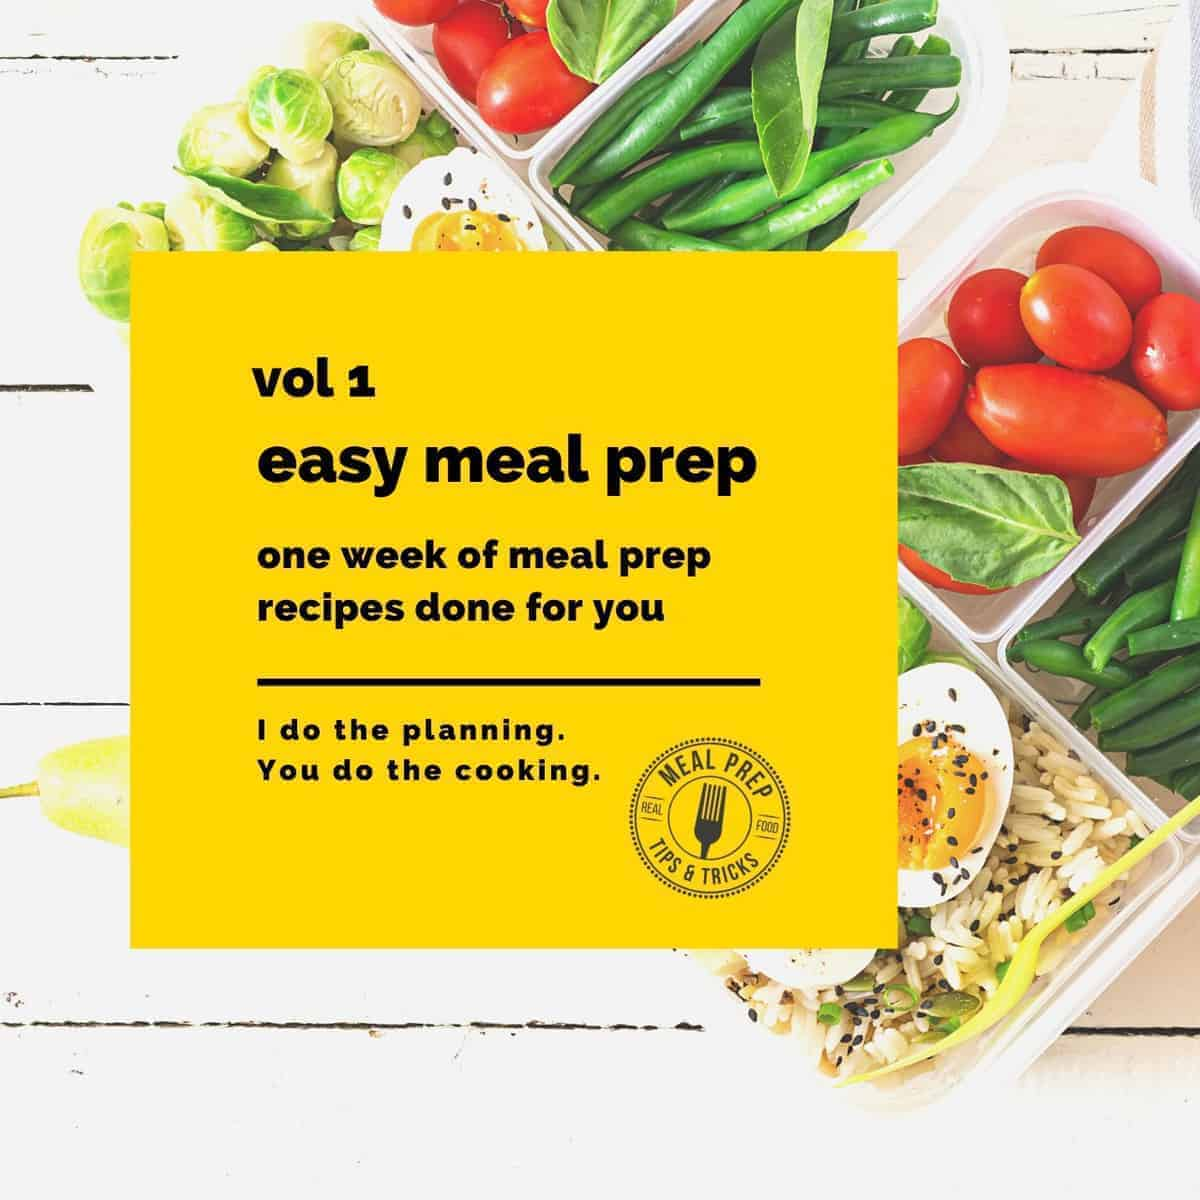 easy meal prep plan vol 1 cover image